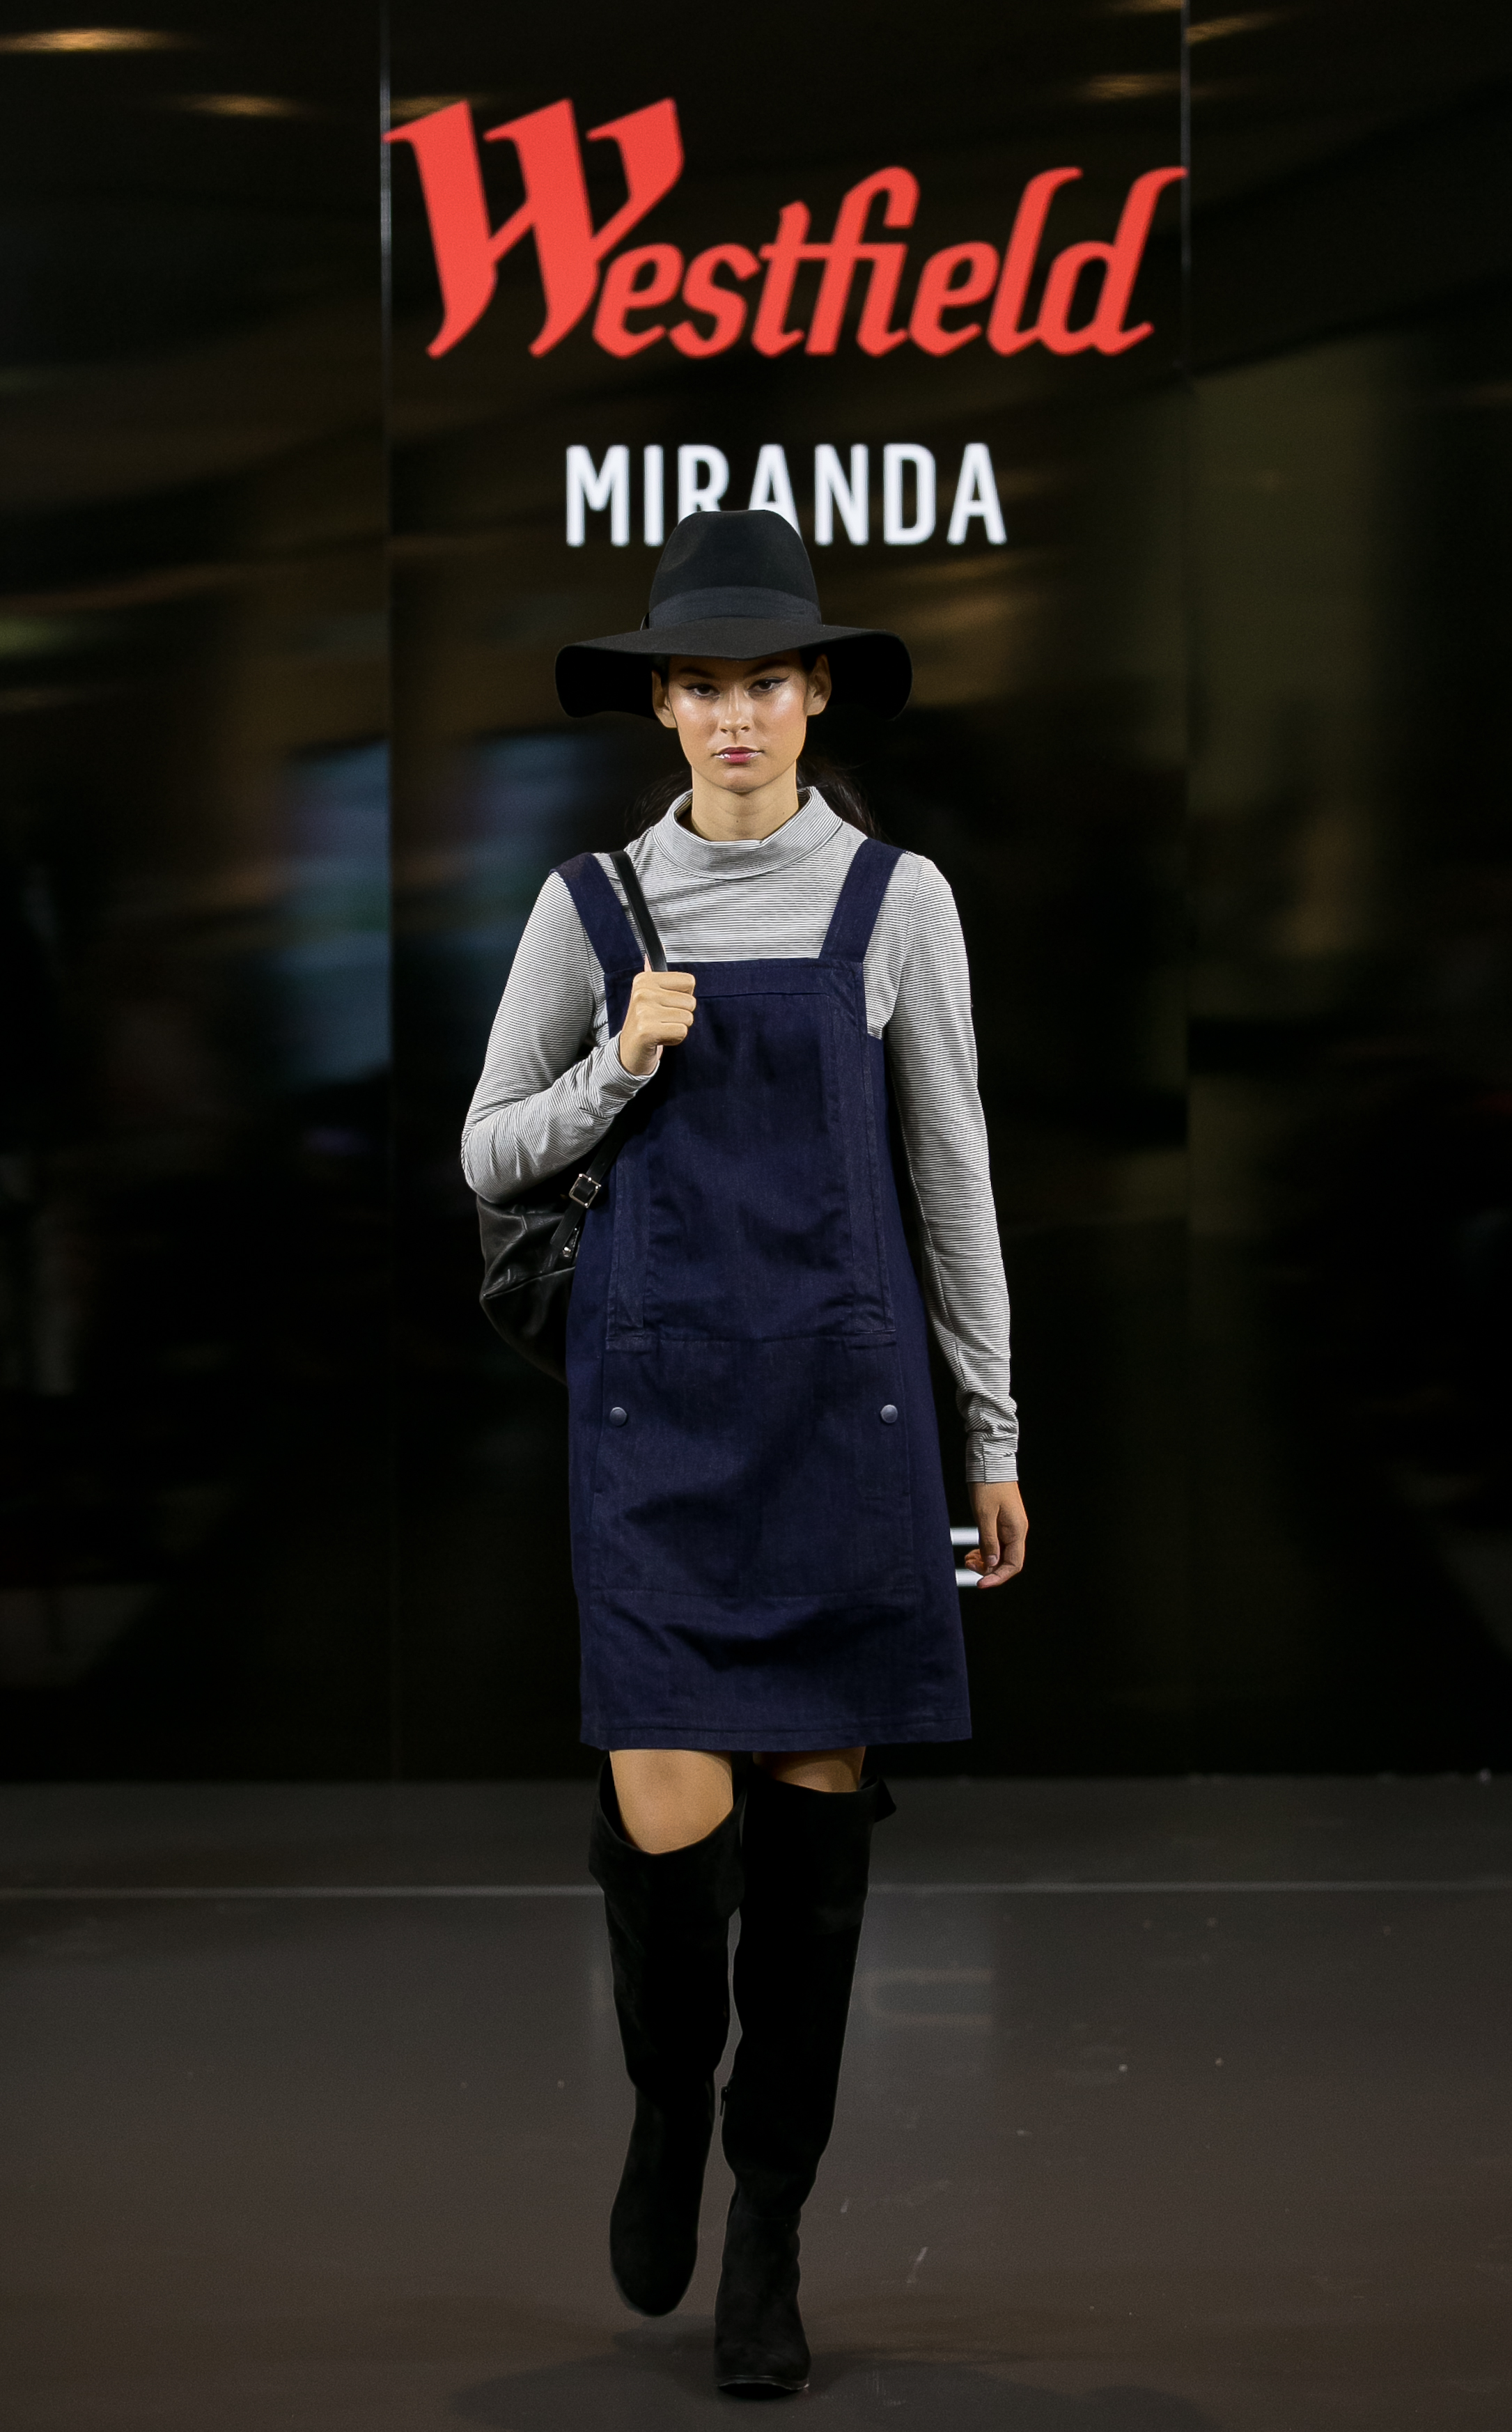 Fashion_Week_Miranda_082_High.jpg